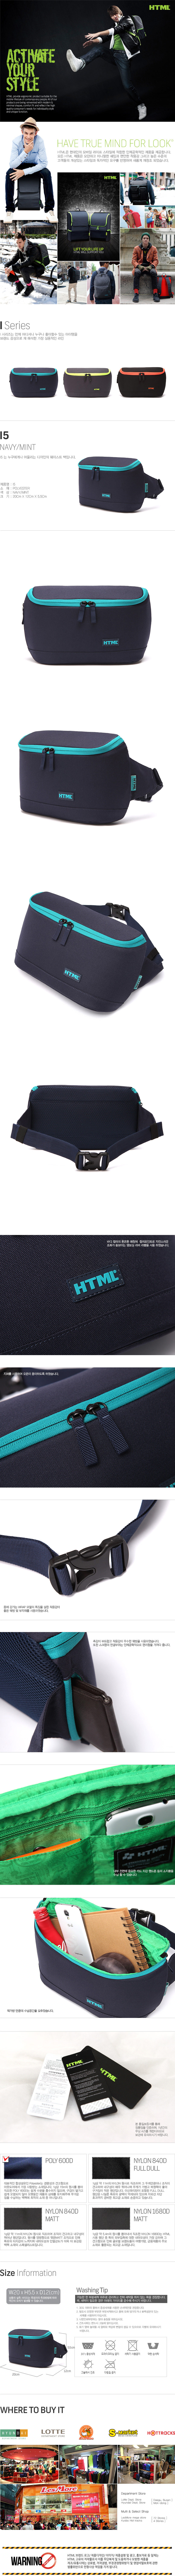 [에이치티엠엘]HTML- I5 Hip sack (NAVY/MINT)